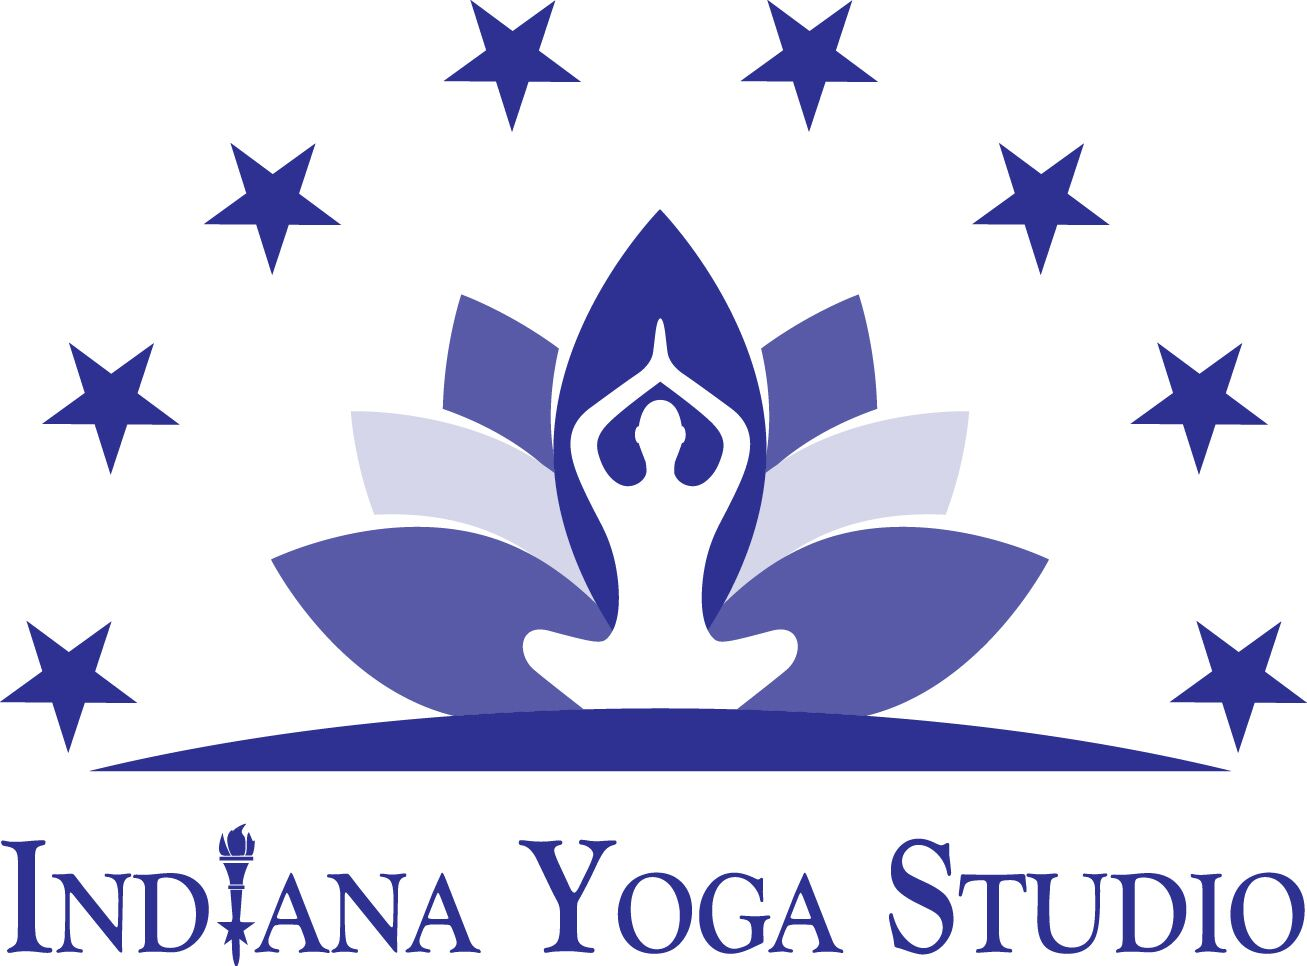 Indiana Yoga Studio